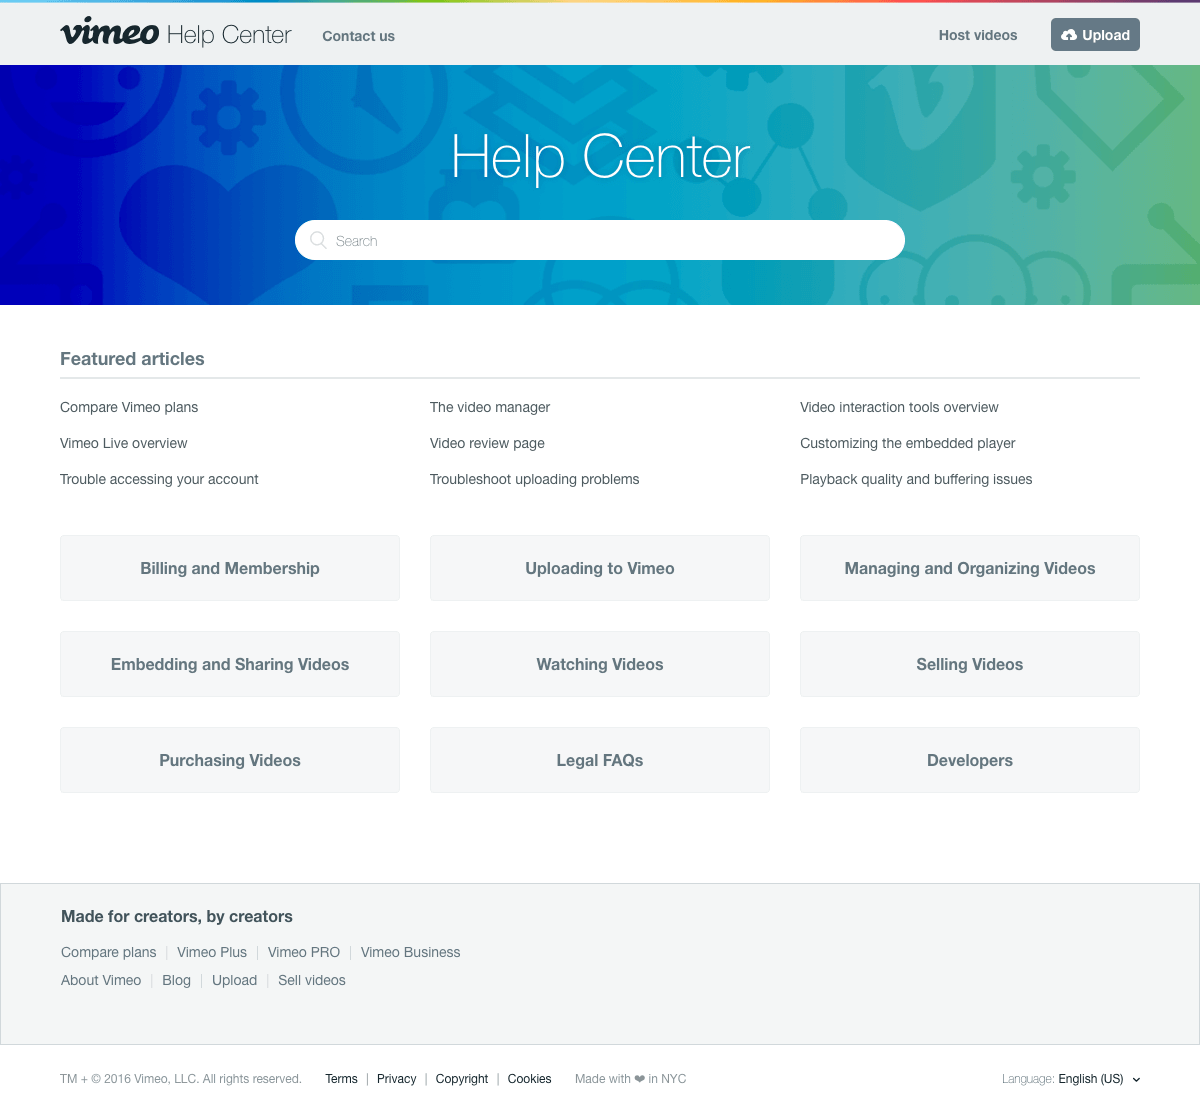 Vimeo - Support page